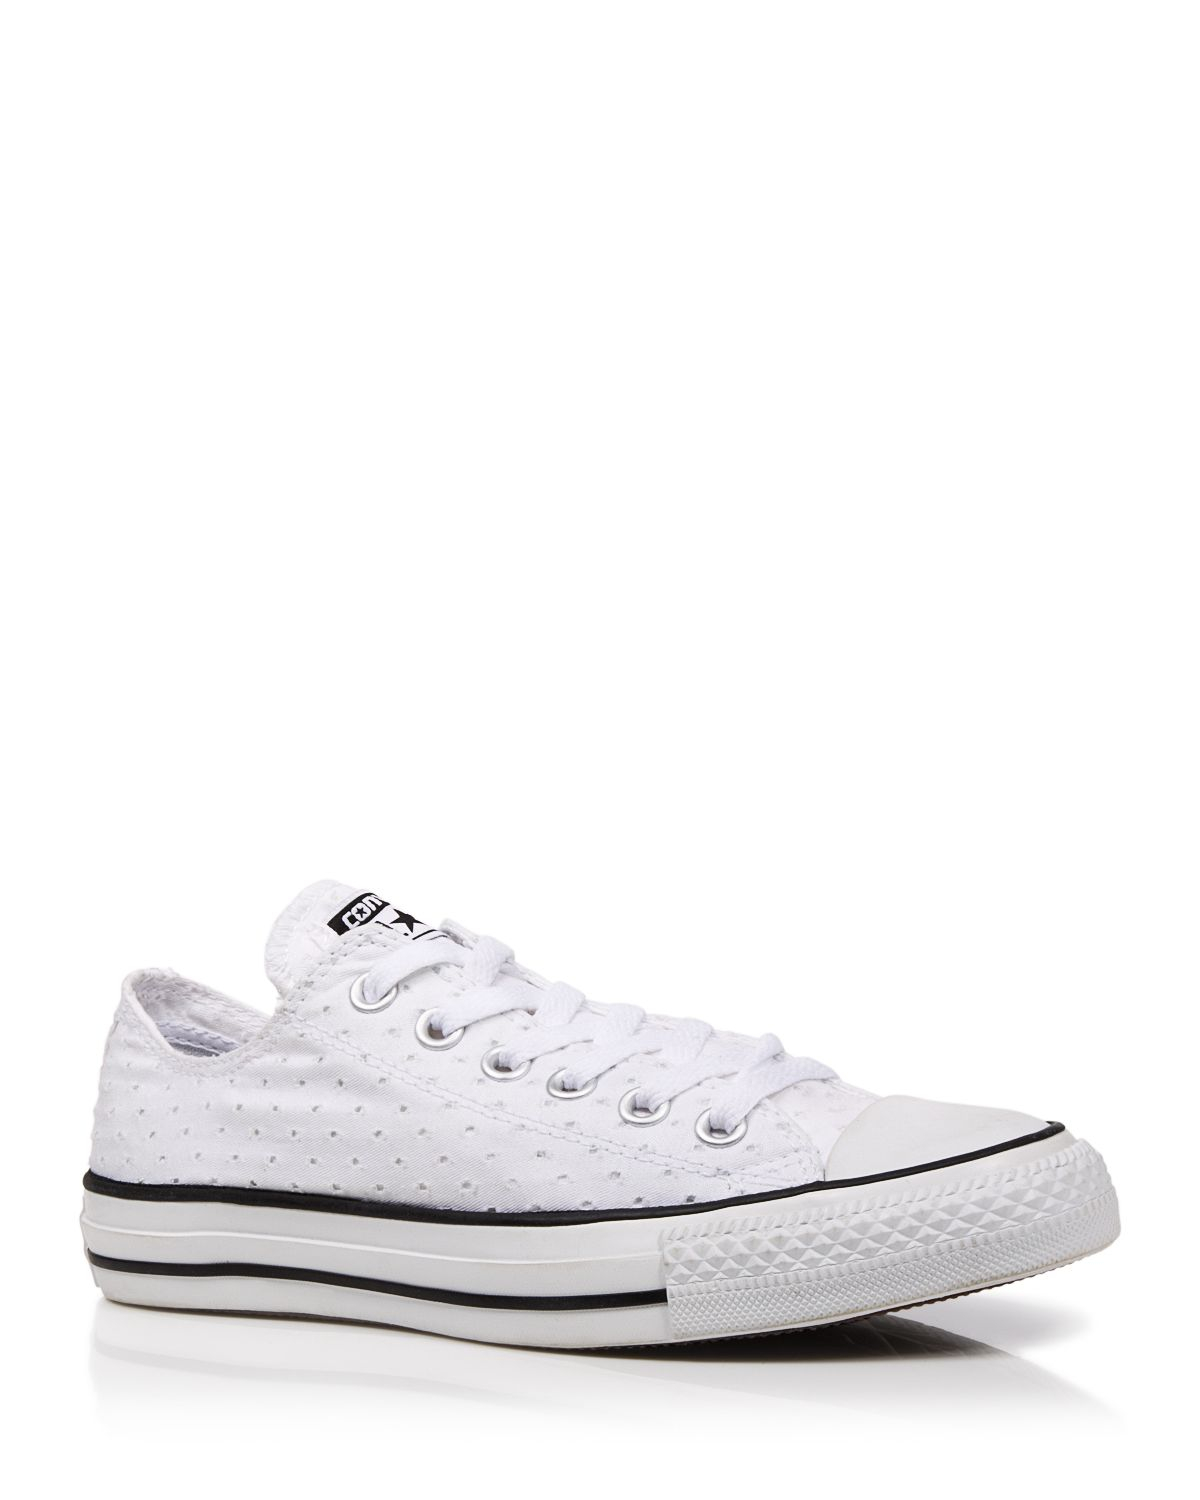 43150f37e40a Lyst - Converse Lace Up Sneakers - Eyelet Low Top in White